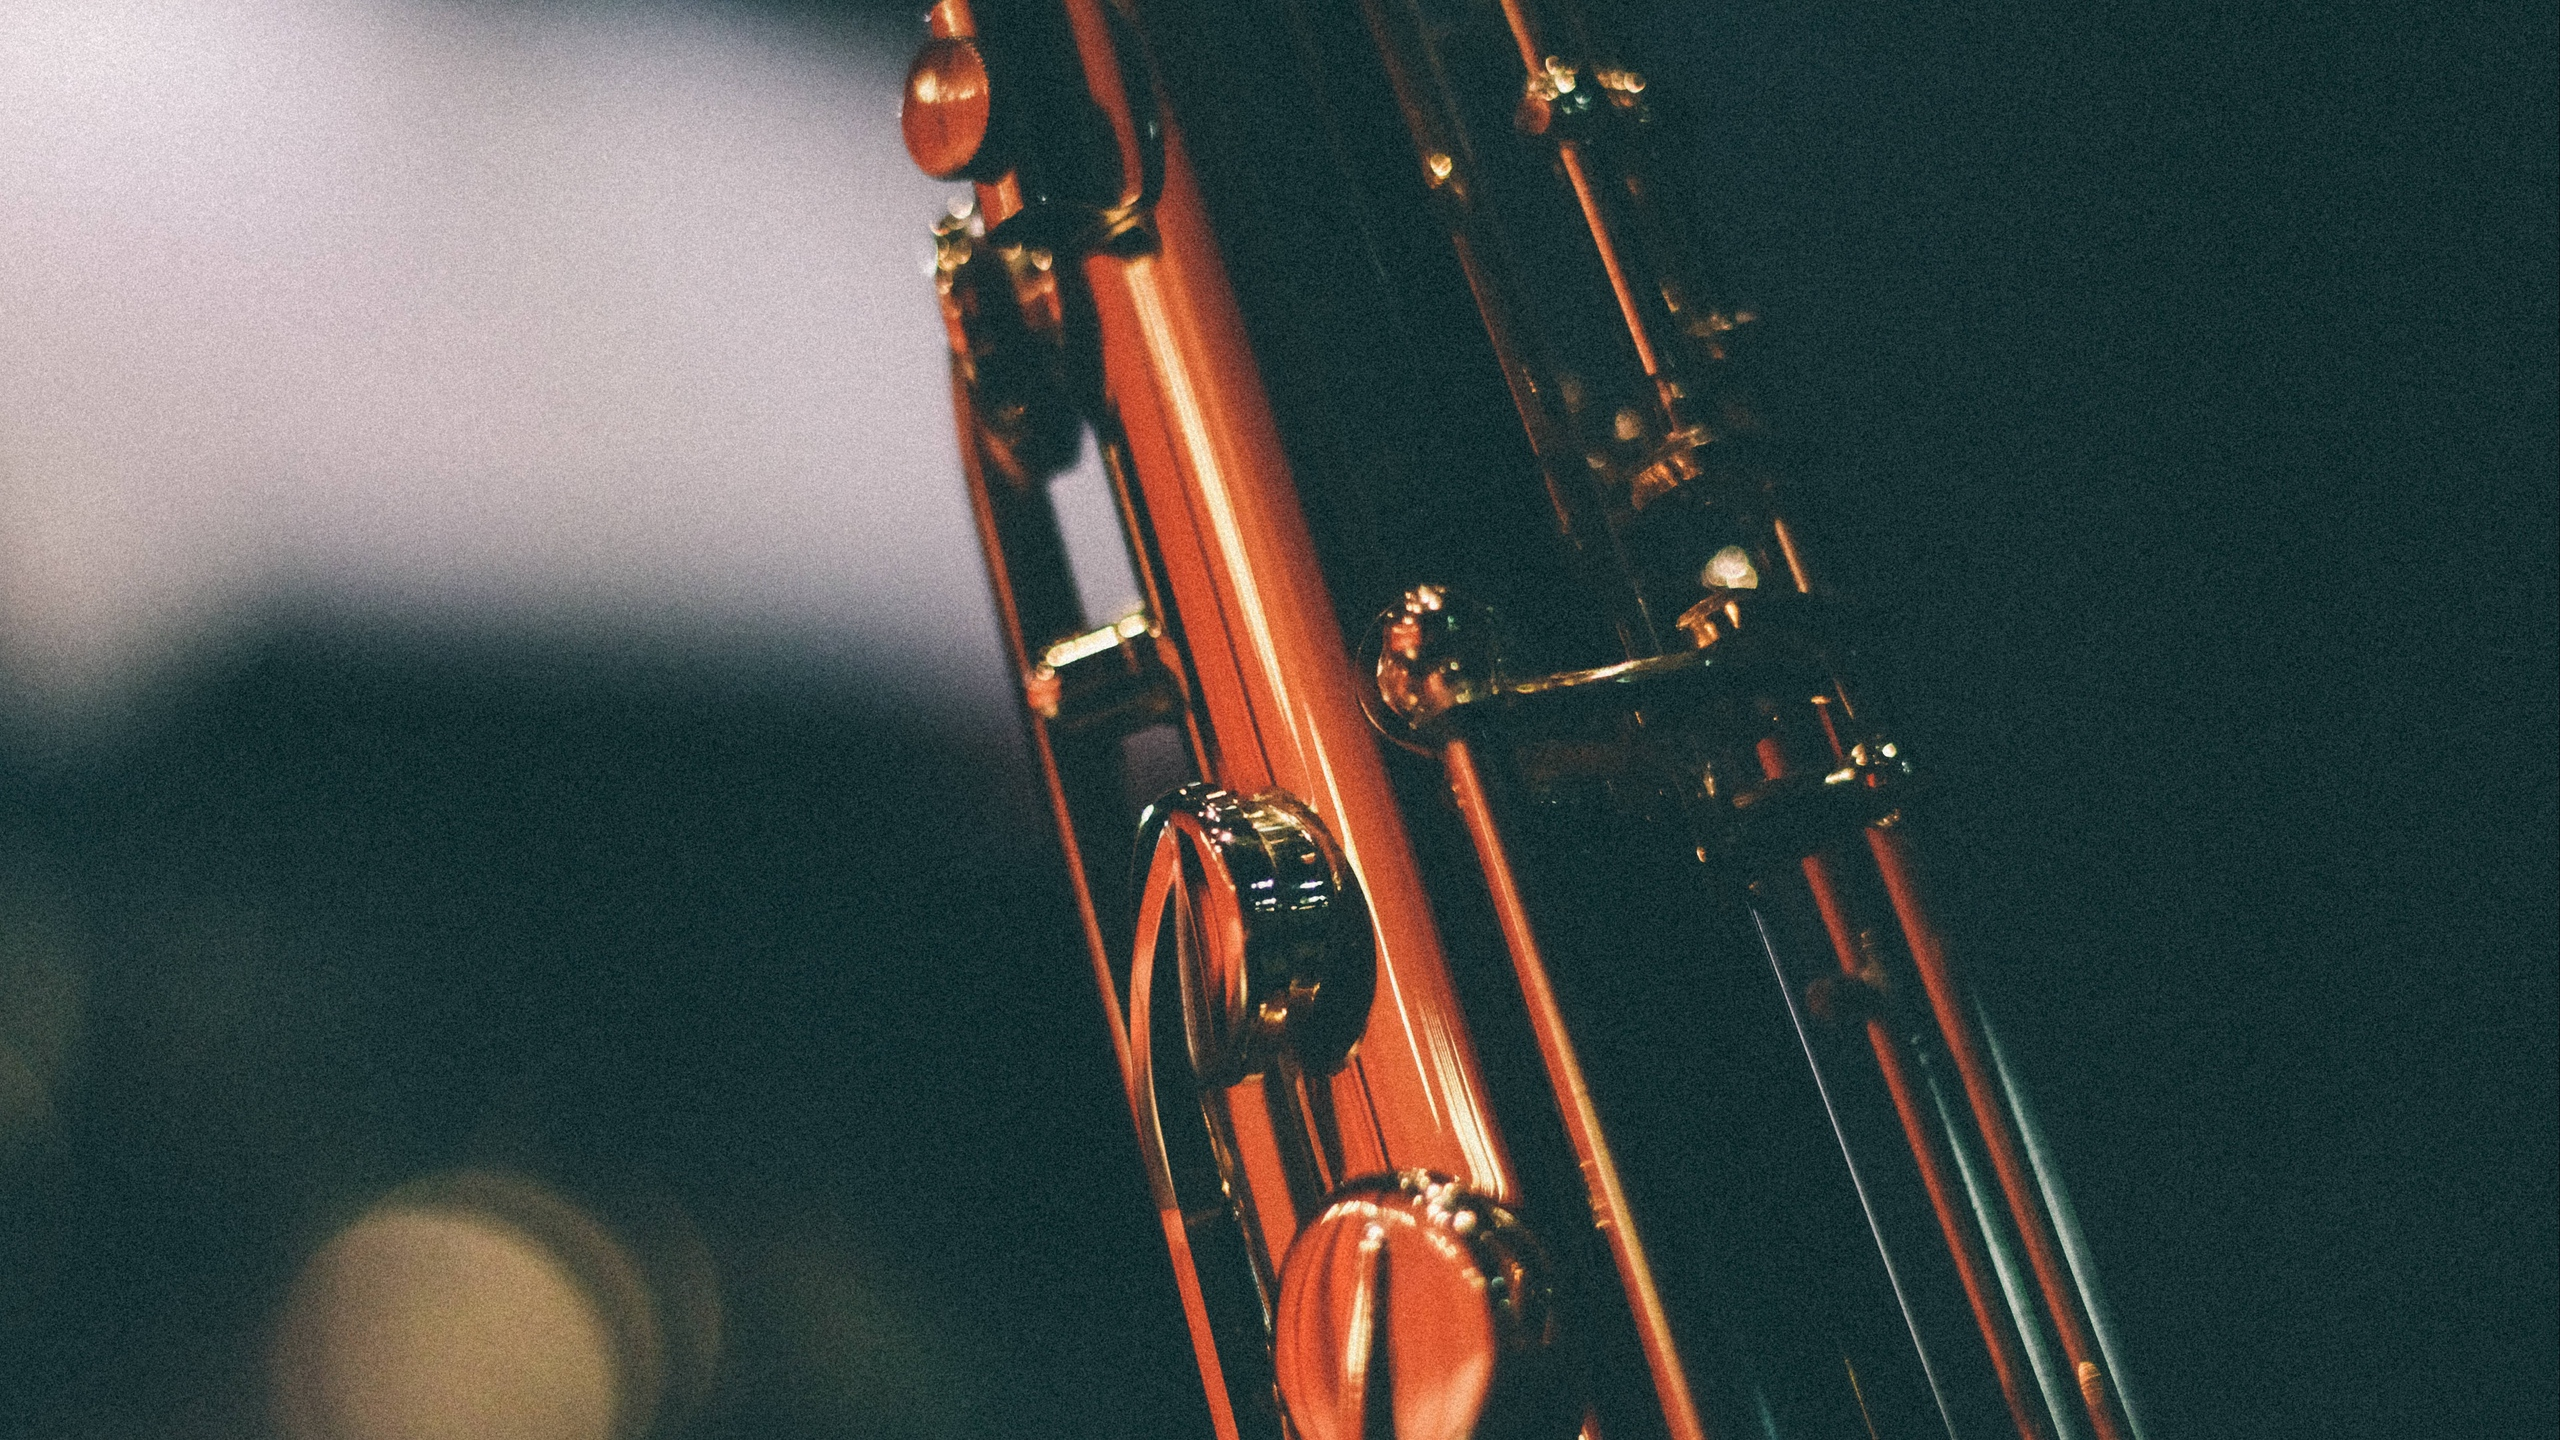 Download wallpapers 2560x1440 saxophone, musical instrument, keys